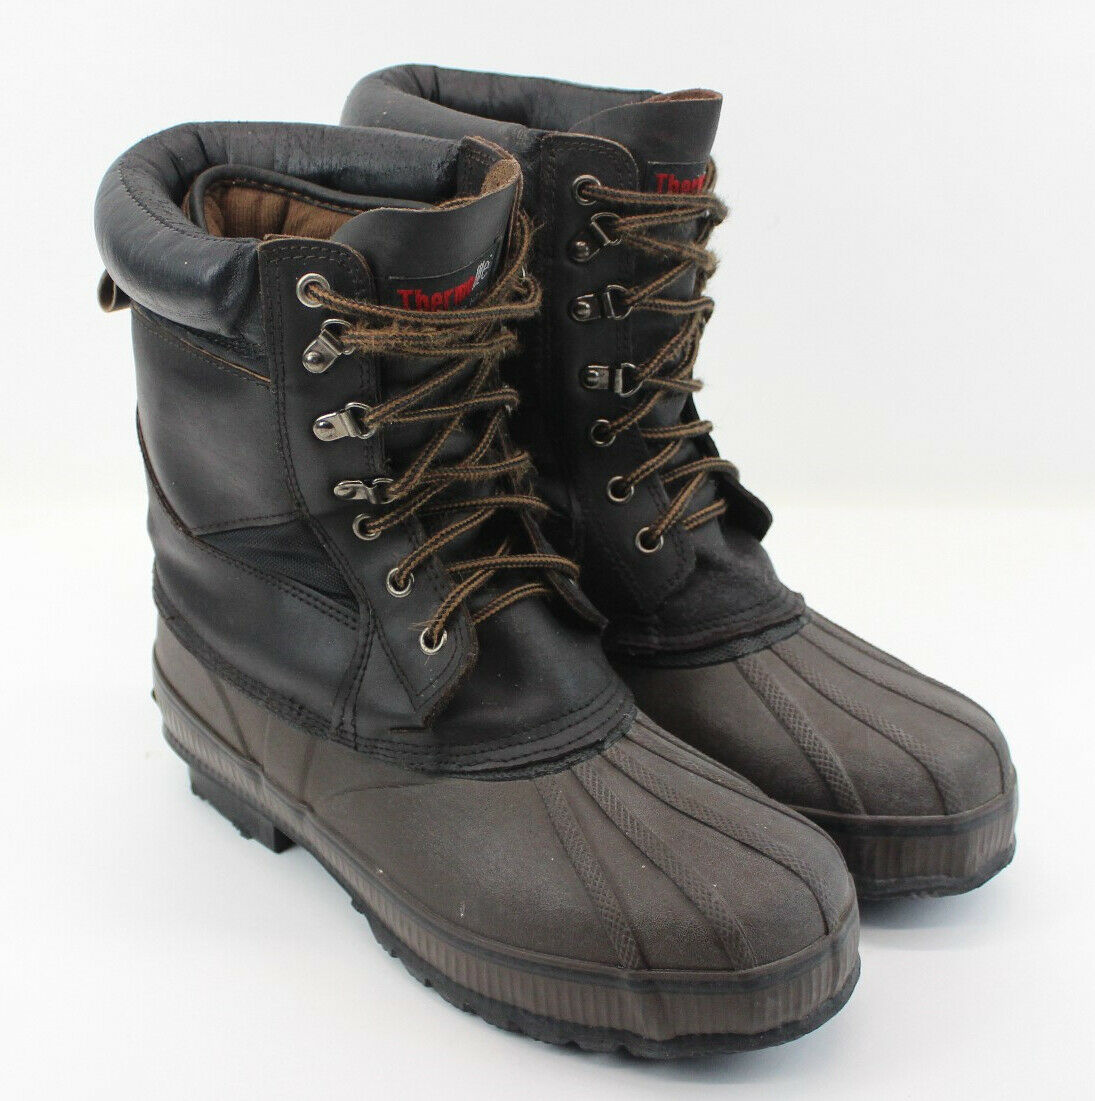 Men's Thermolite Winter Boots Brown Size 10 Soft Outer Cover Very Comfortable